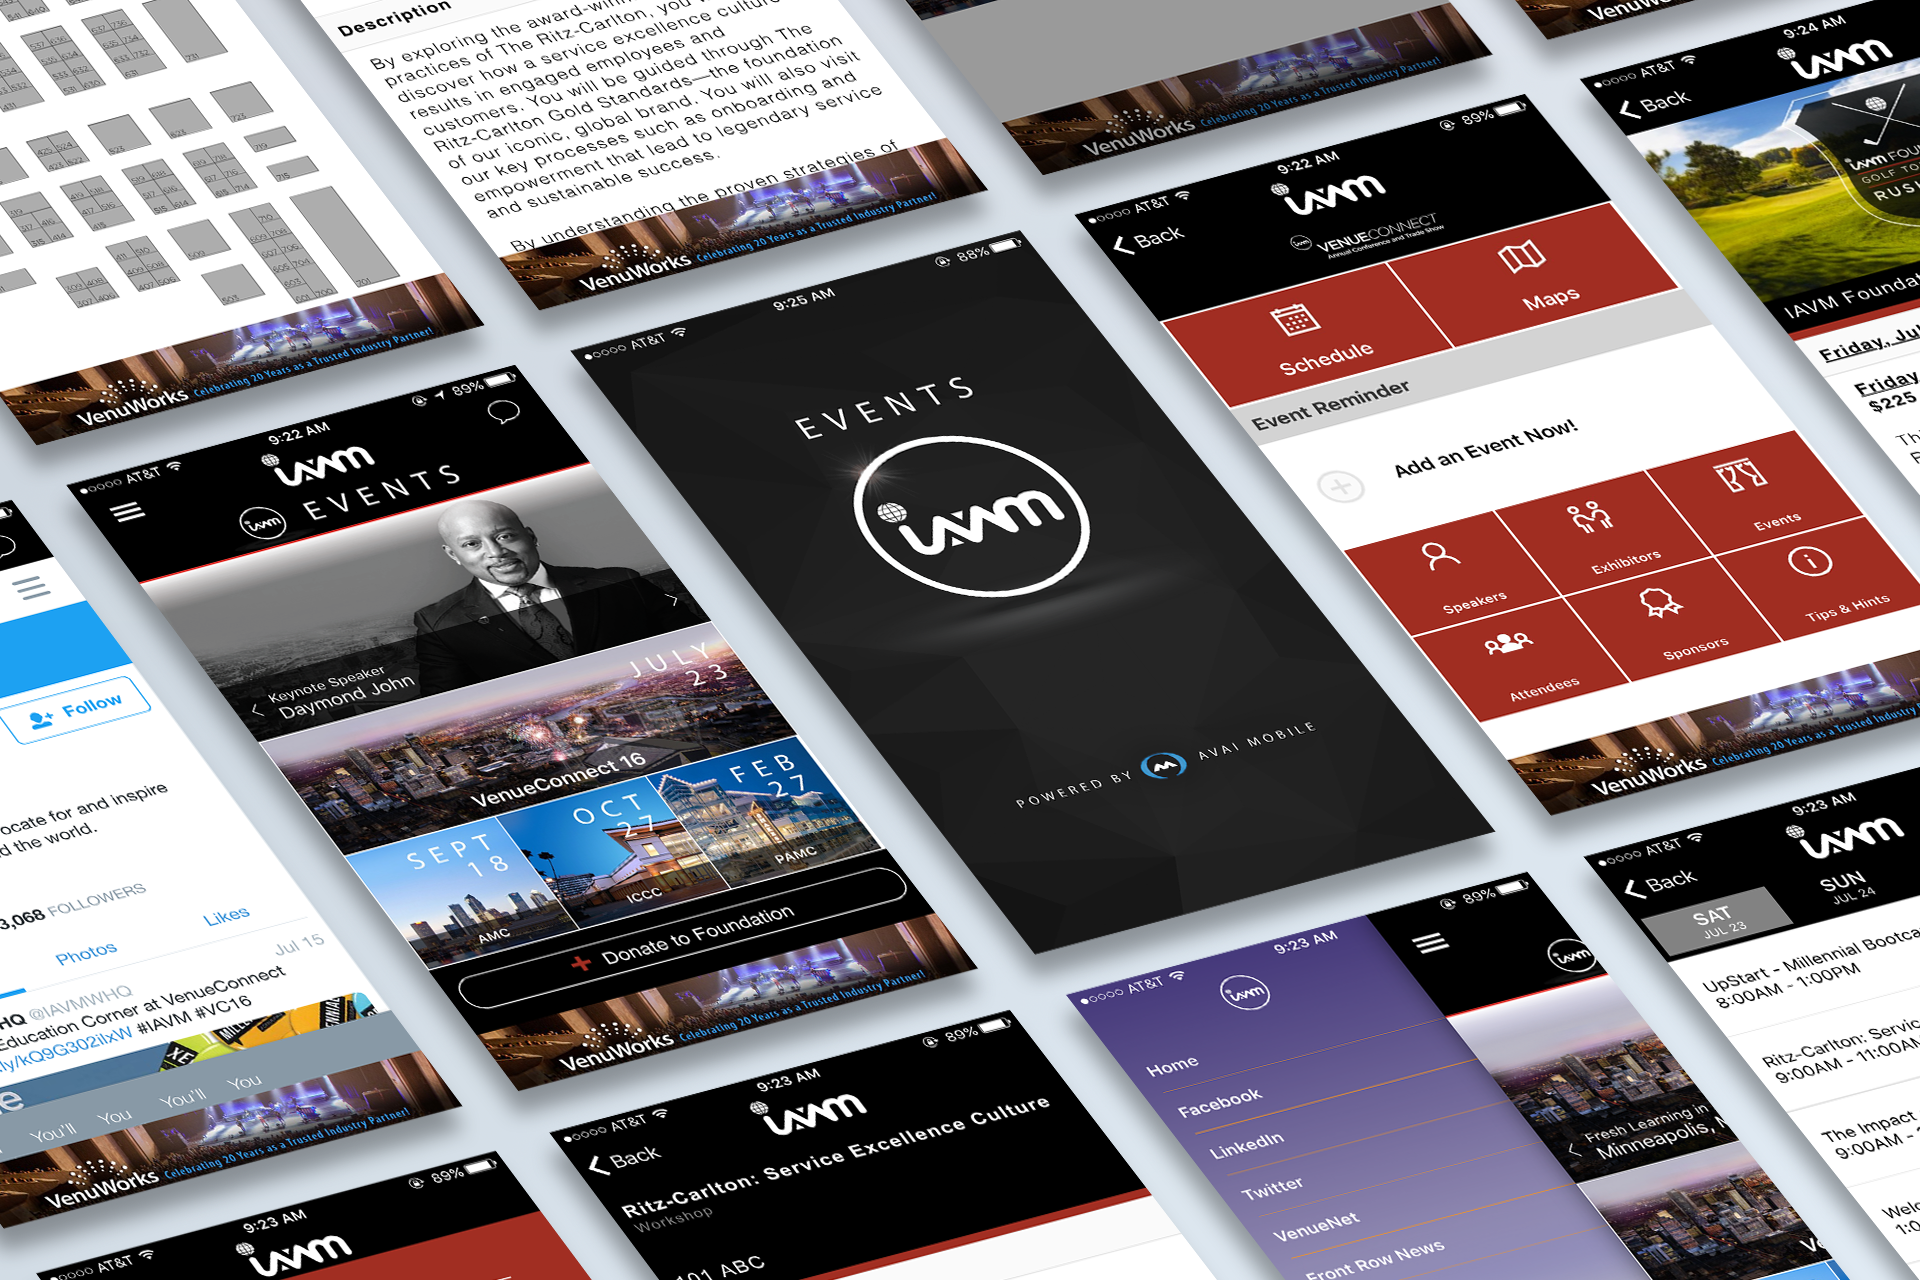 IAVM Events App Spread